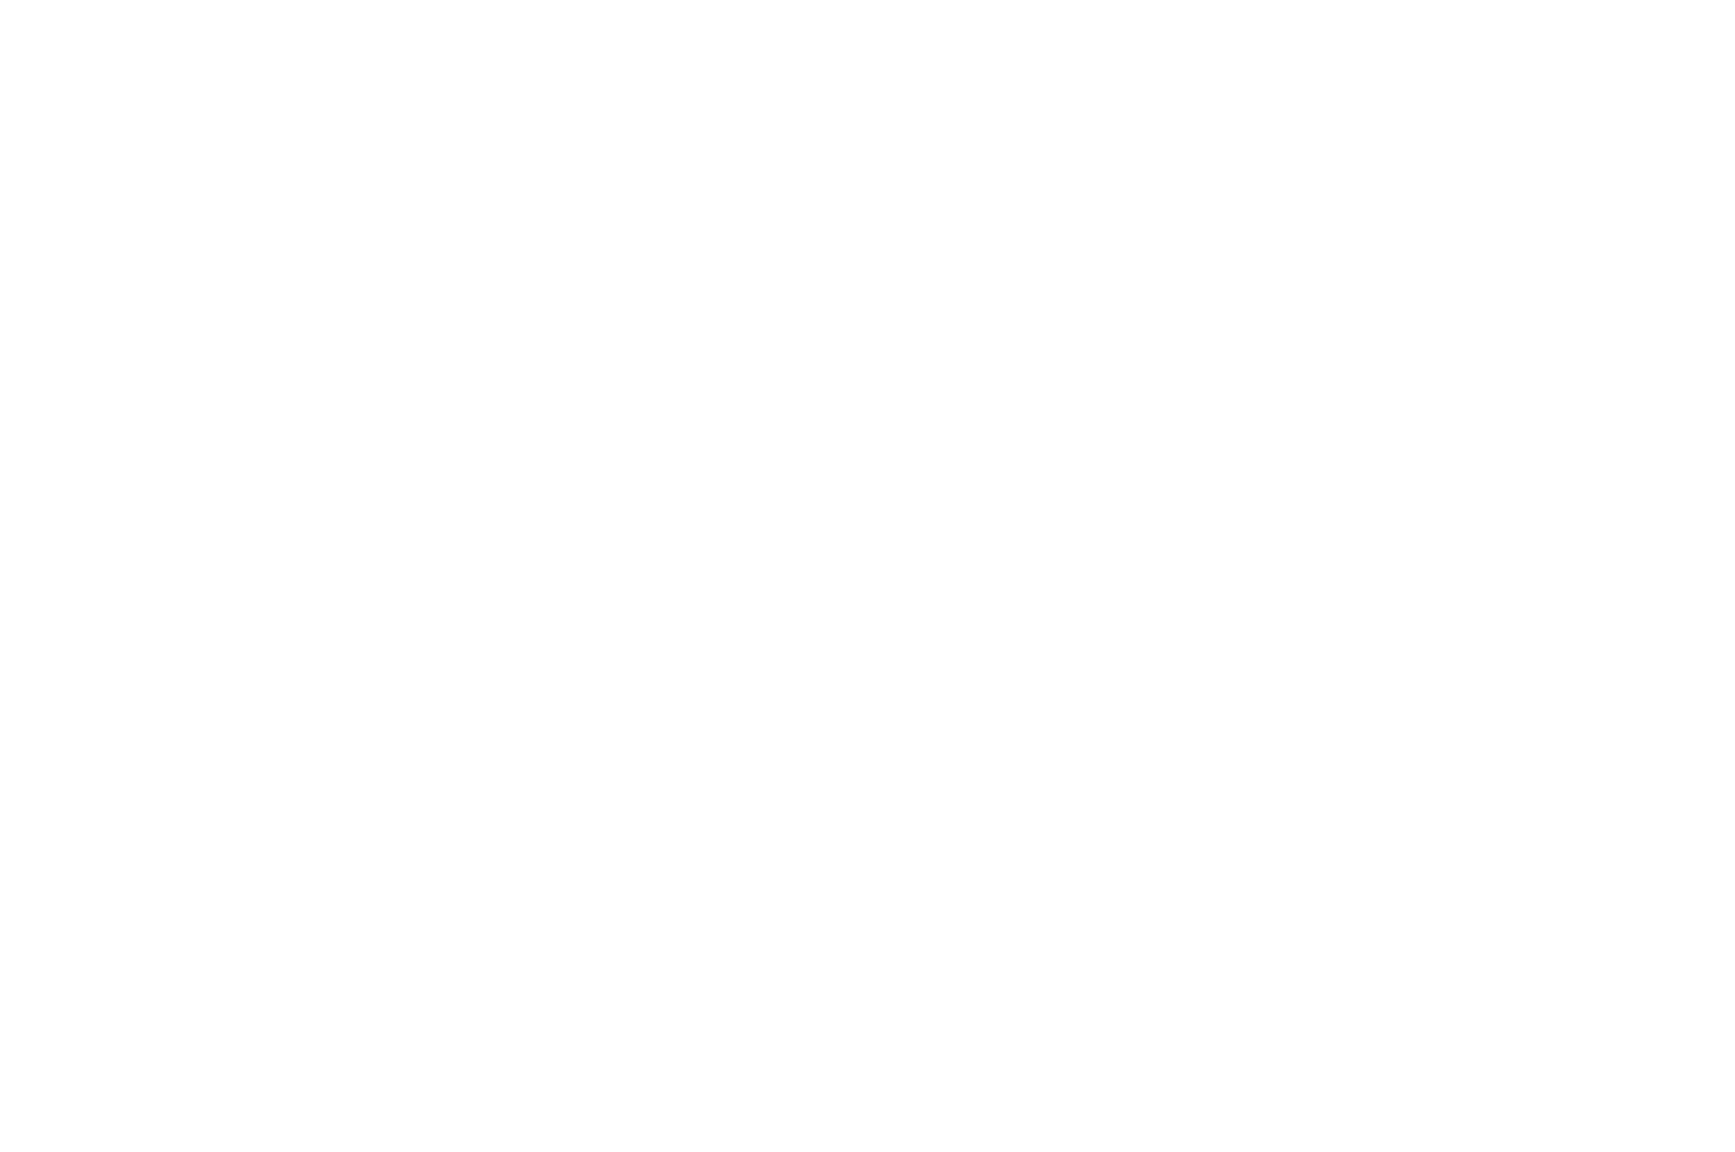 FINALIST - Hang on to Your Shorts Film Festival - 2020